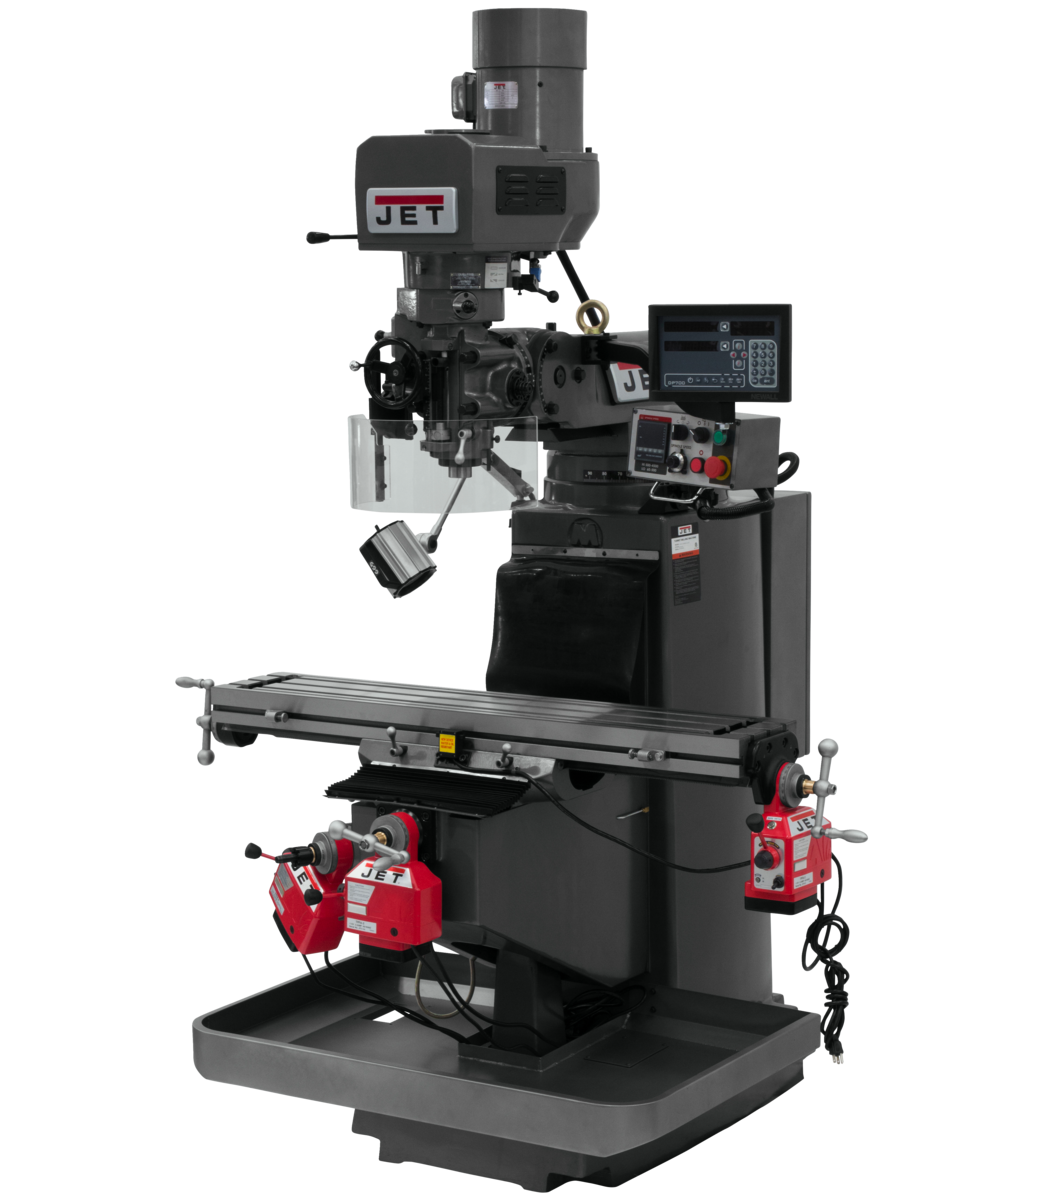 JTM-949EVS Mill With 3-Axis Newall DP700 DRO (Knee) With X, Y and Z-Axis Powerfeeds